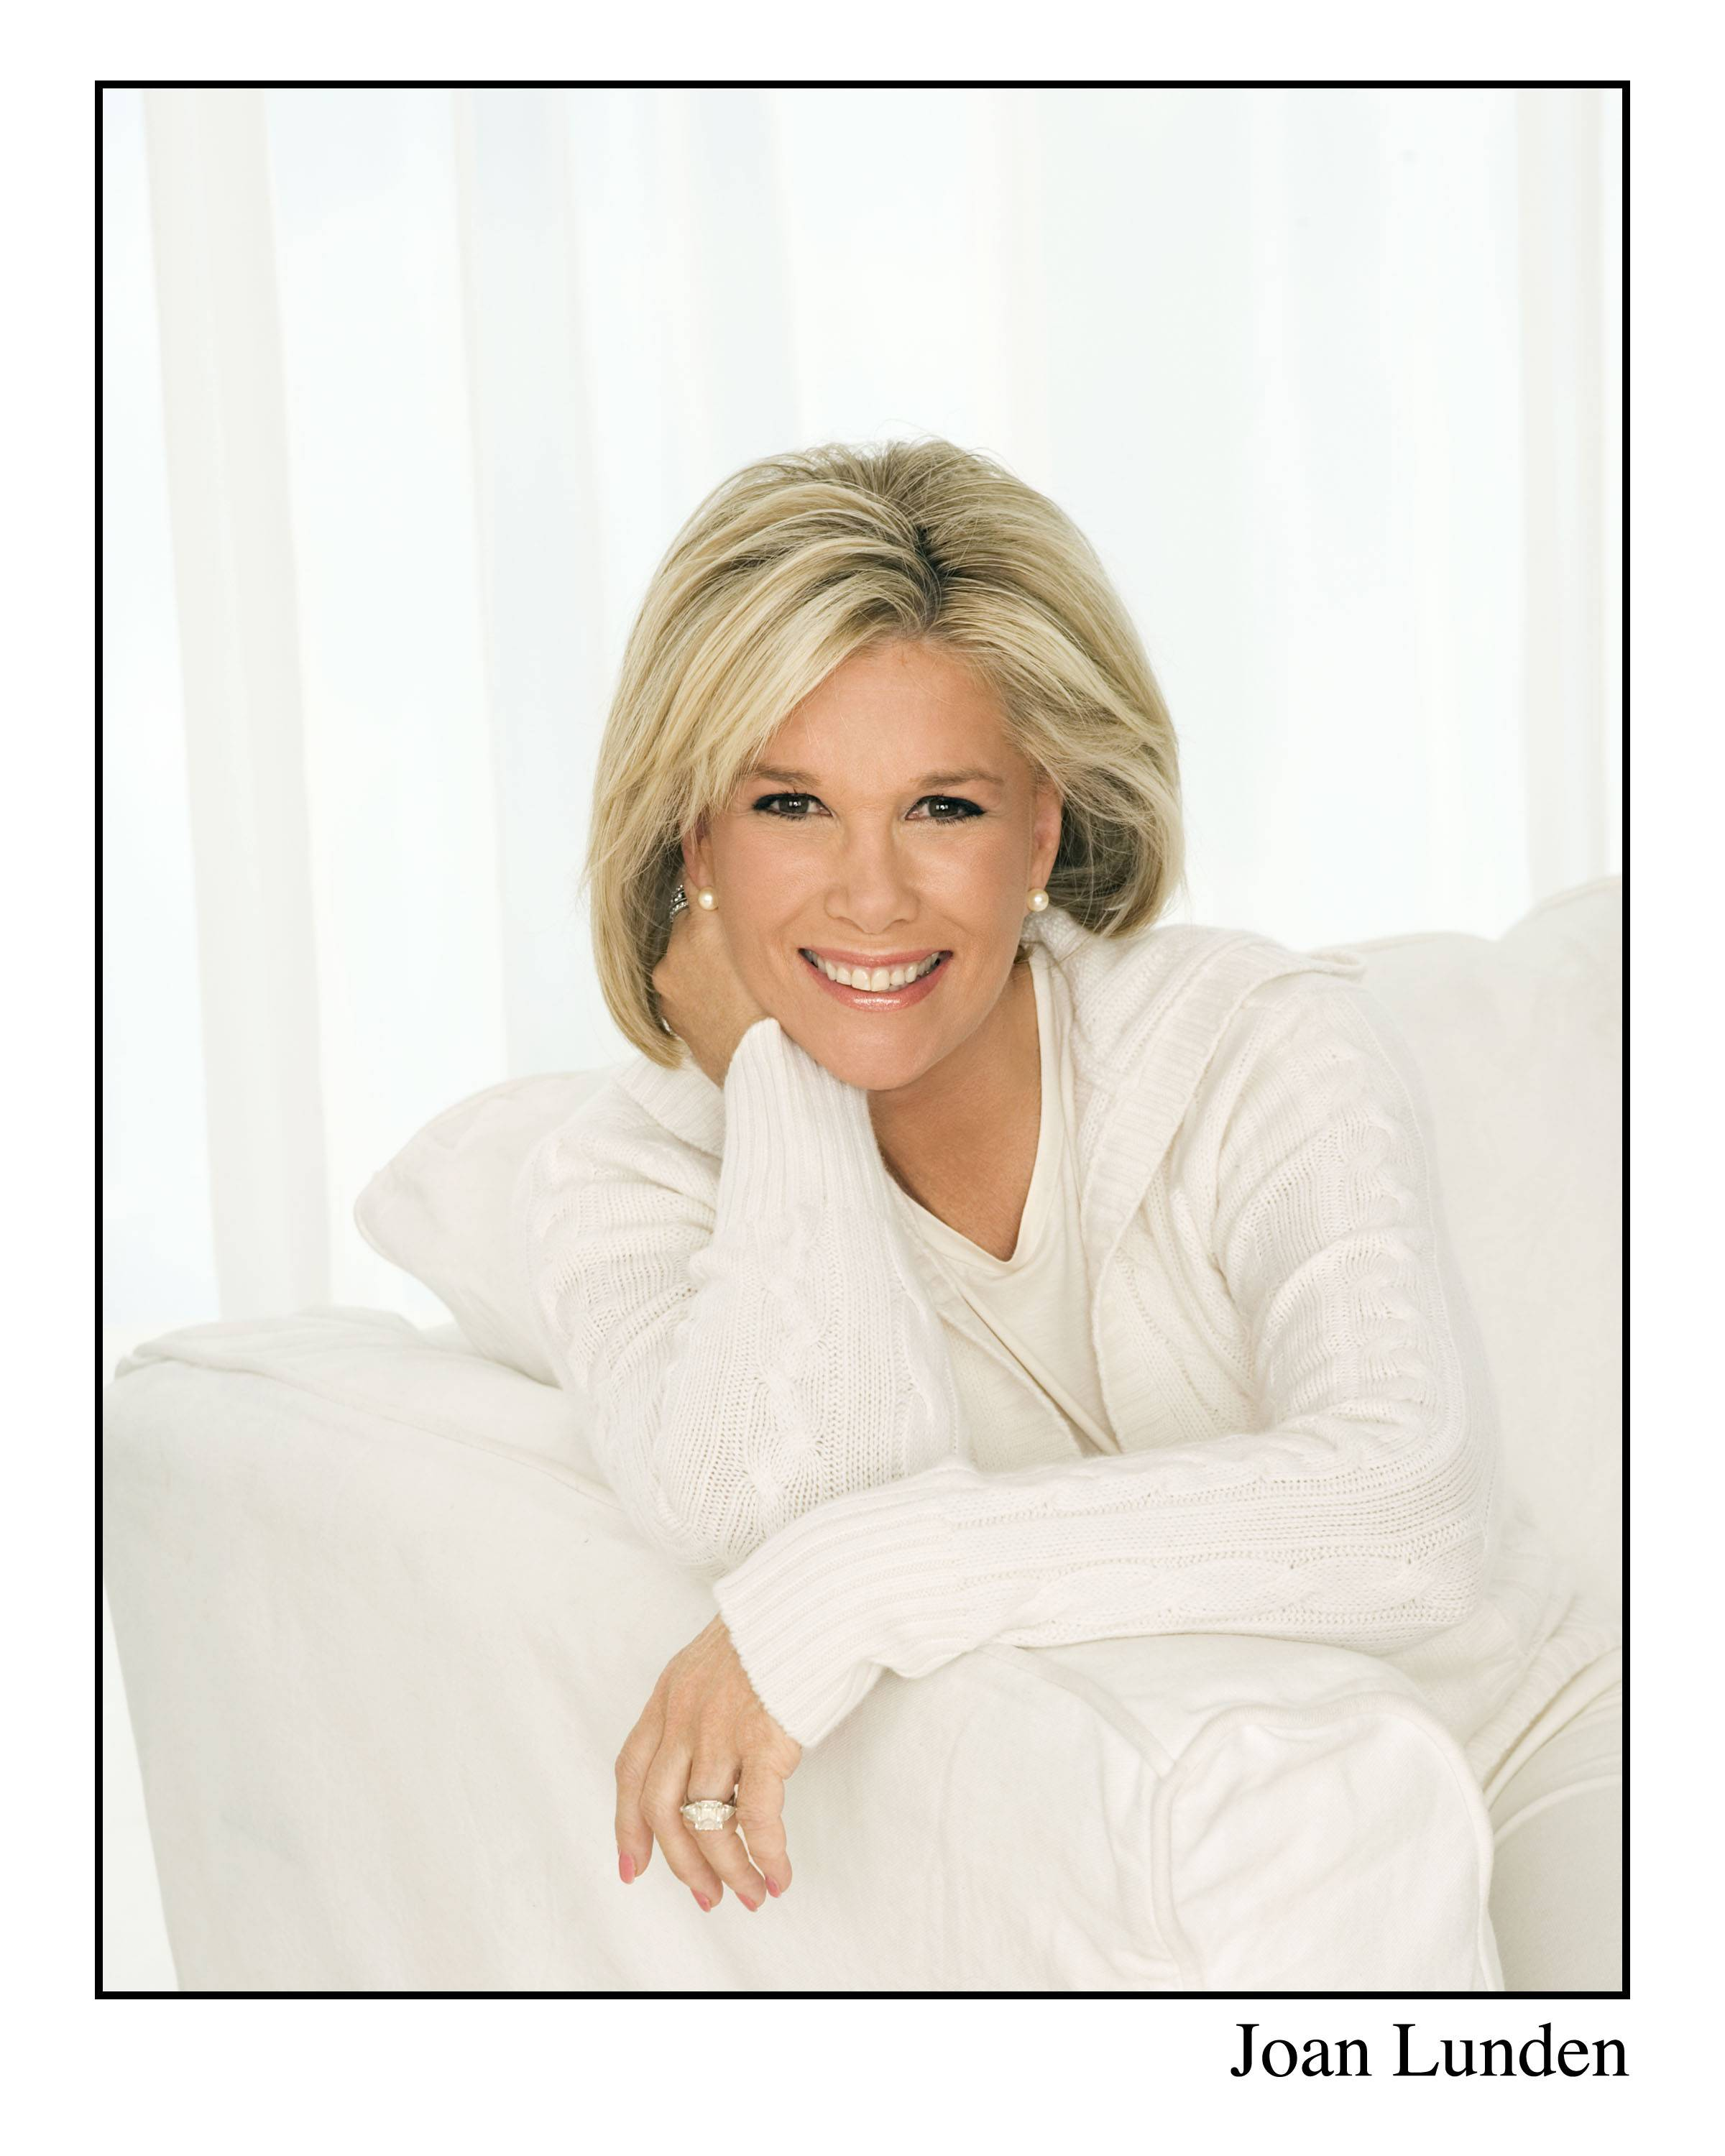 Joan Lunden appearing on Aging Info RadioJoan Lunden